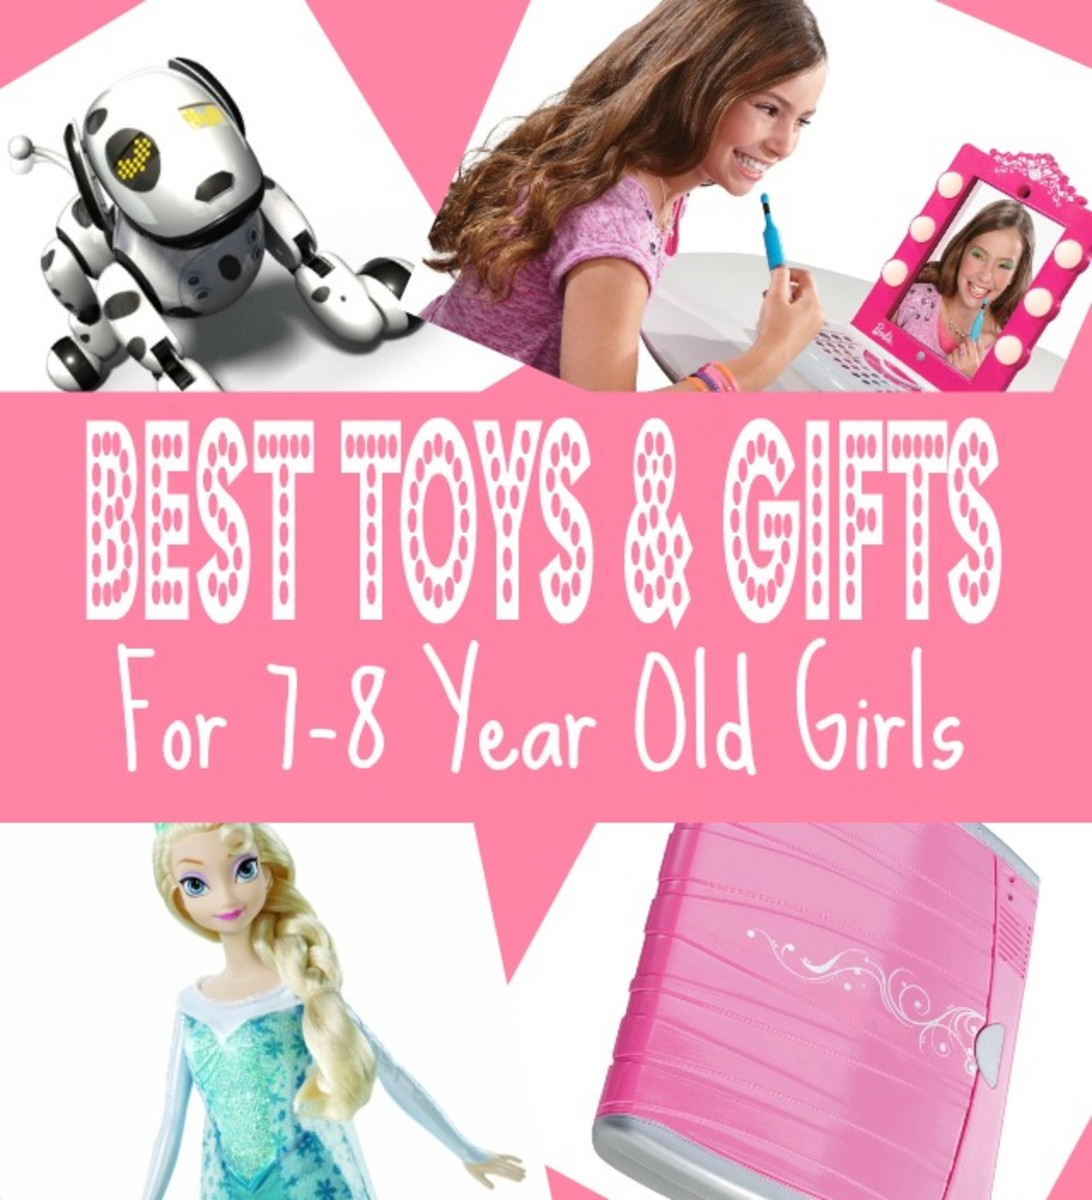 Best Toys Gifts For 1 Year Old Girls : Best gifts top toys for year old girls in